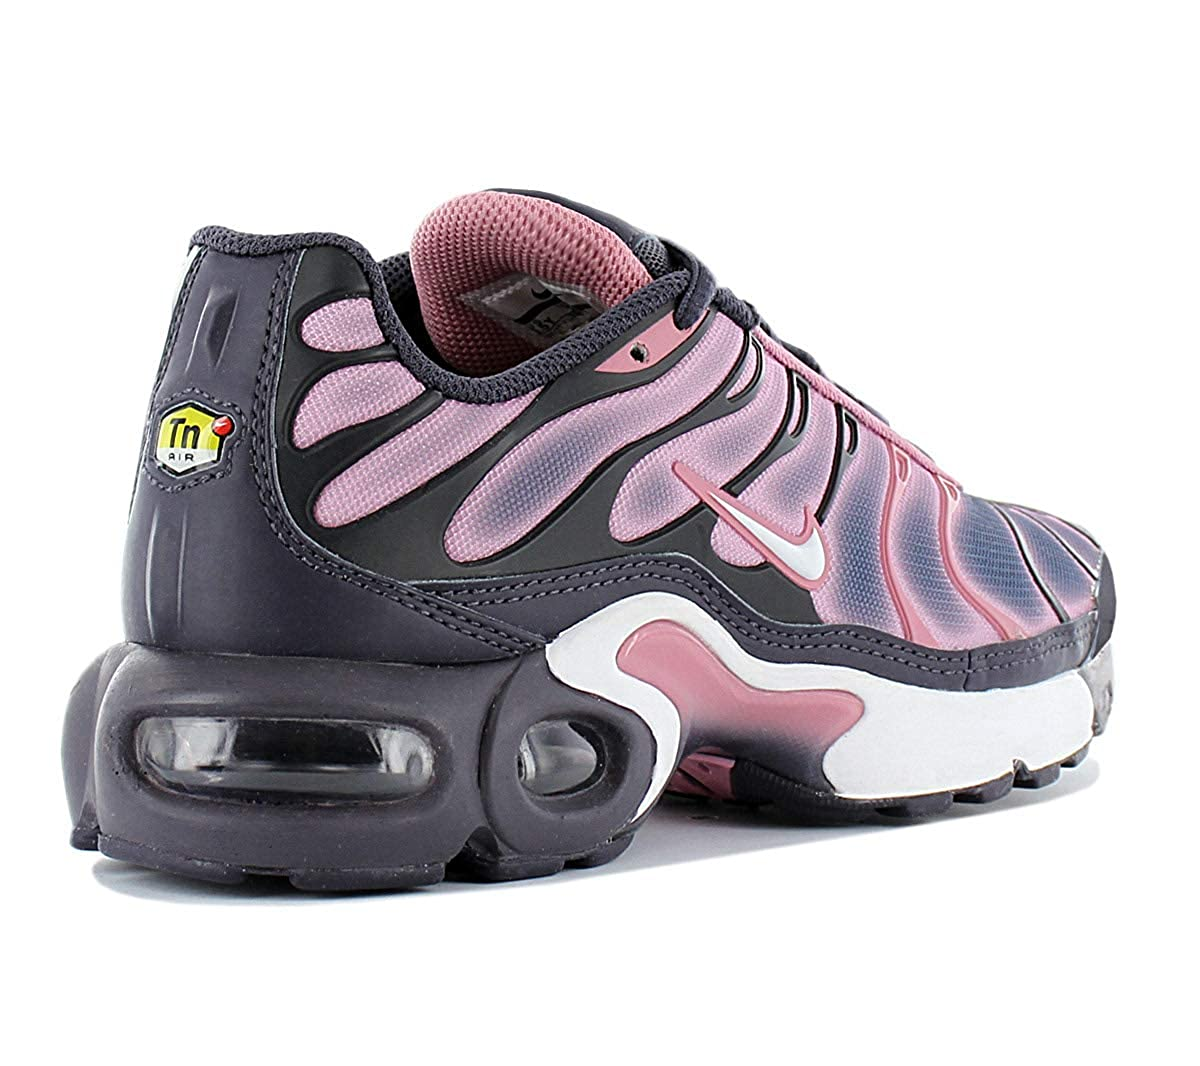 nike air max plus damen bunt